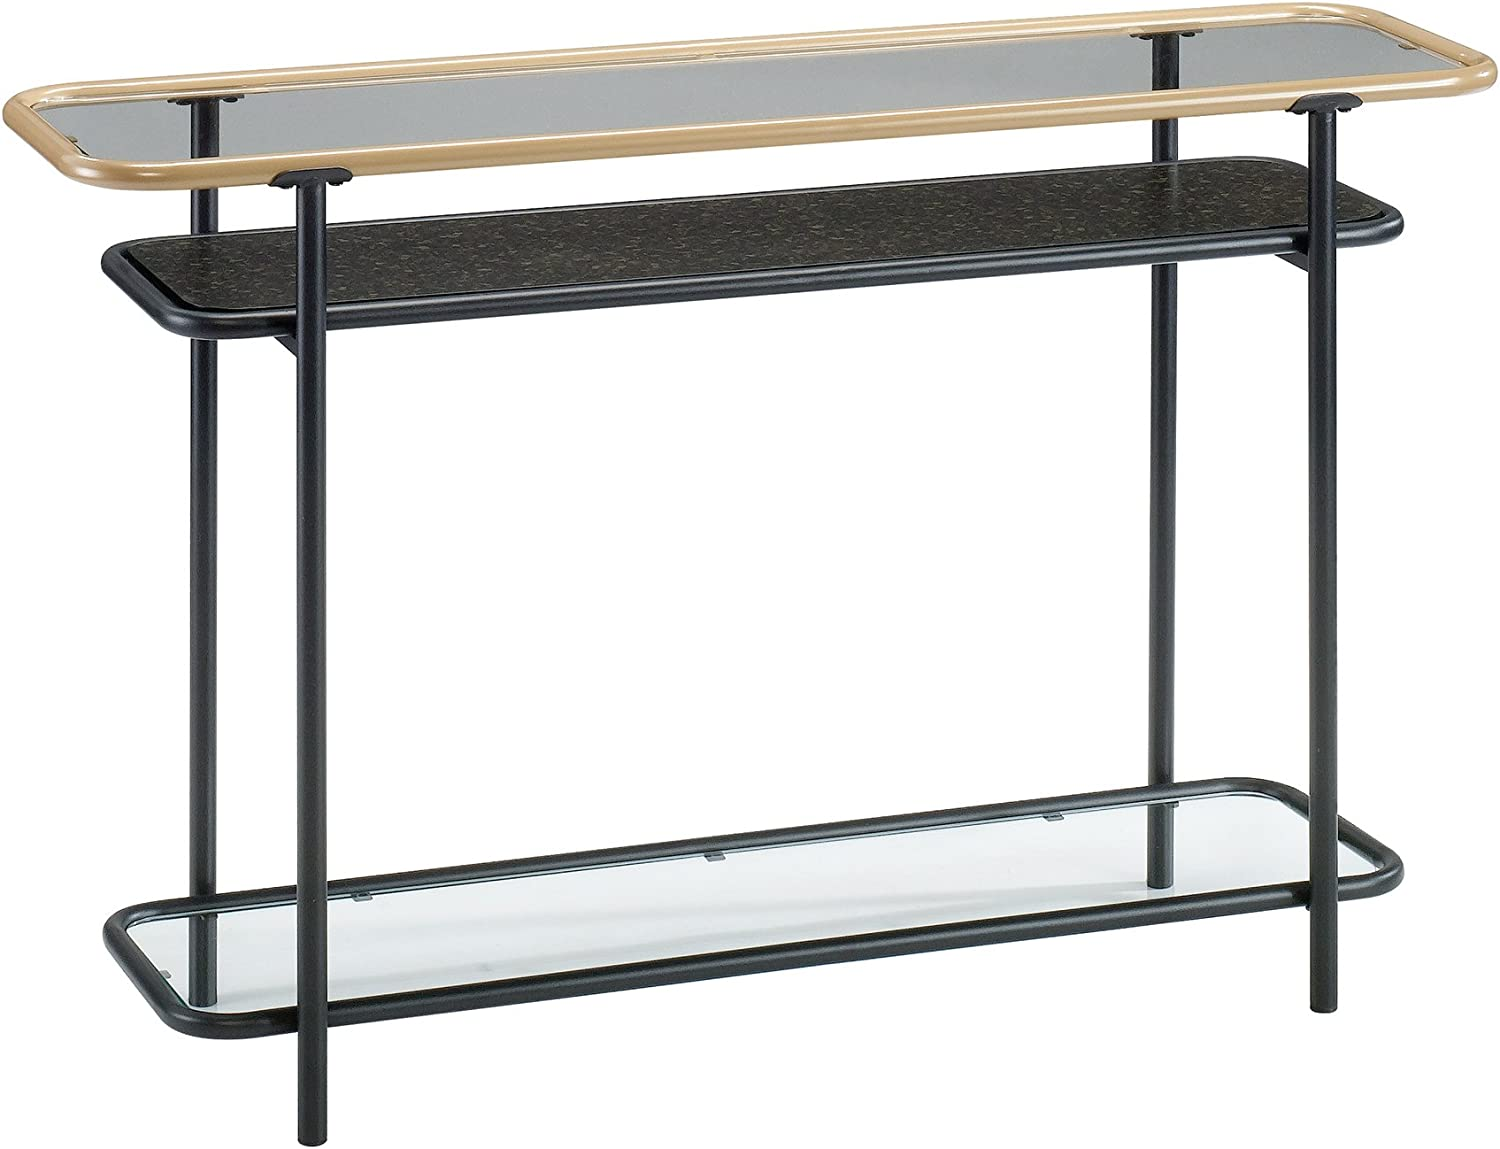 Sauder Boulevard Cafe Glass Top Console Table in Black and Copper